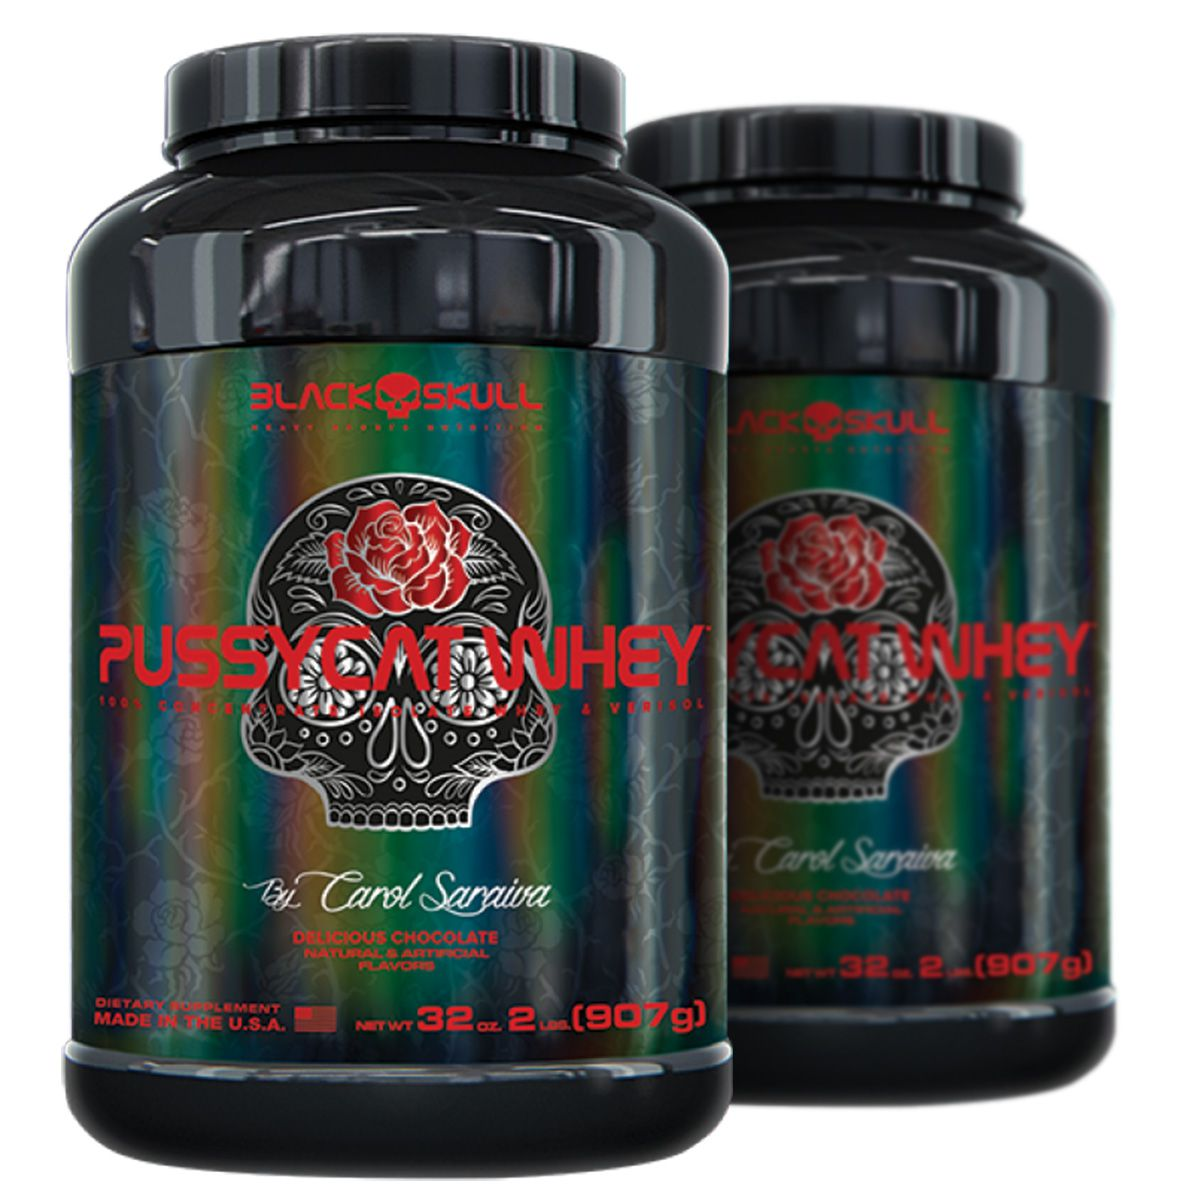 Compre 1 Leve 2 Pussycat Whey - 900g - Black Skull